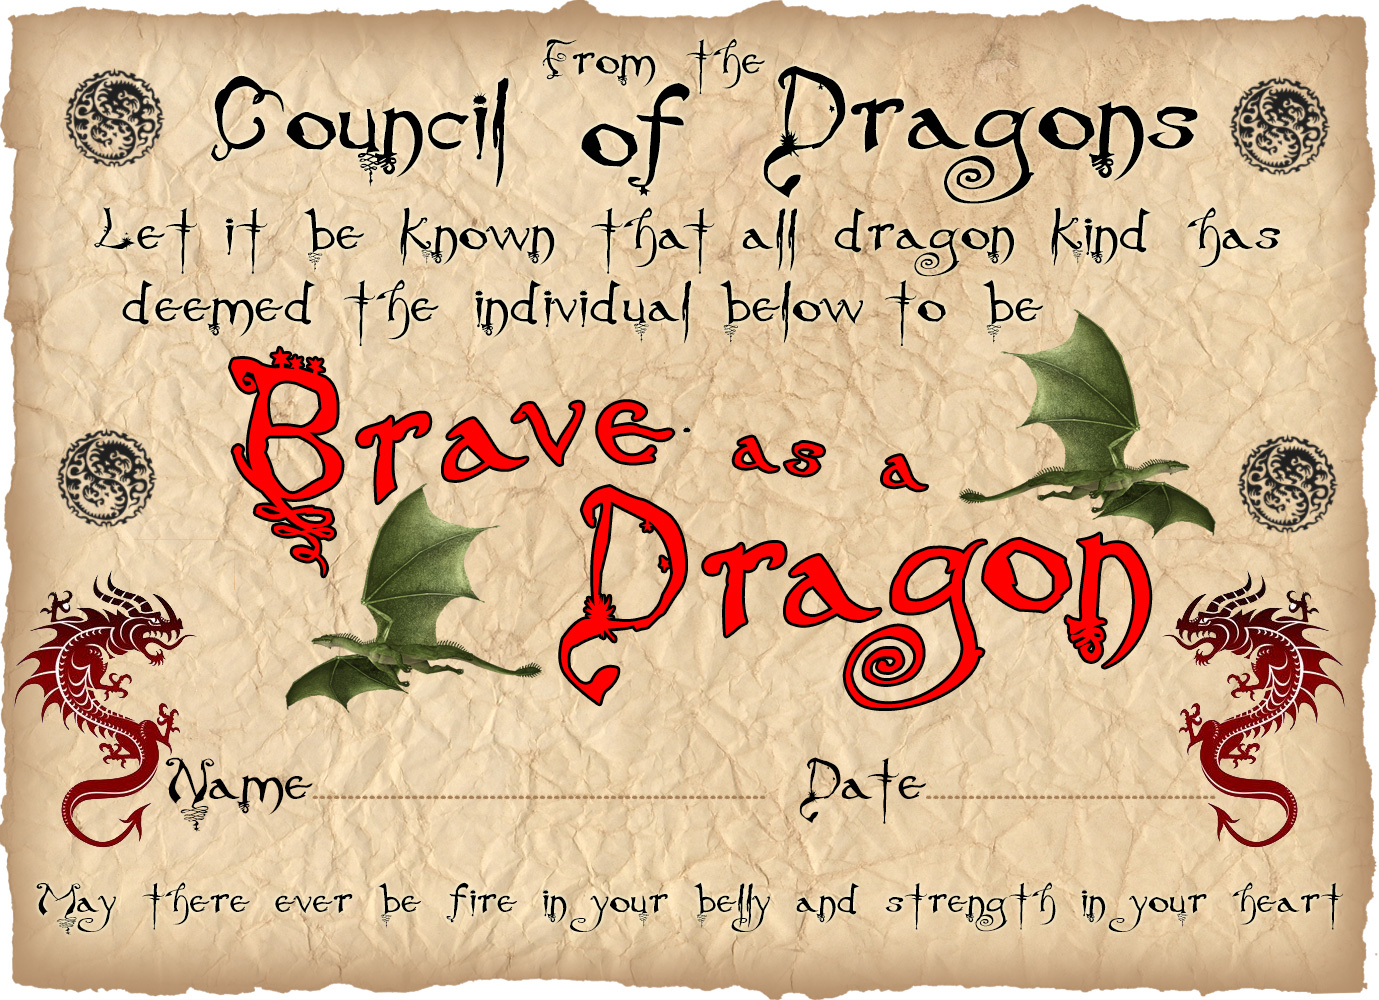 Printable children's certificate saying you've been as brave as a dragon.